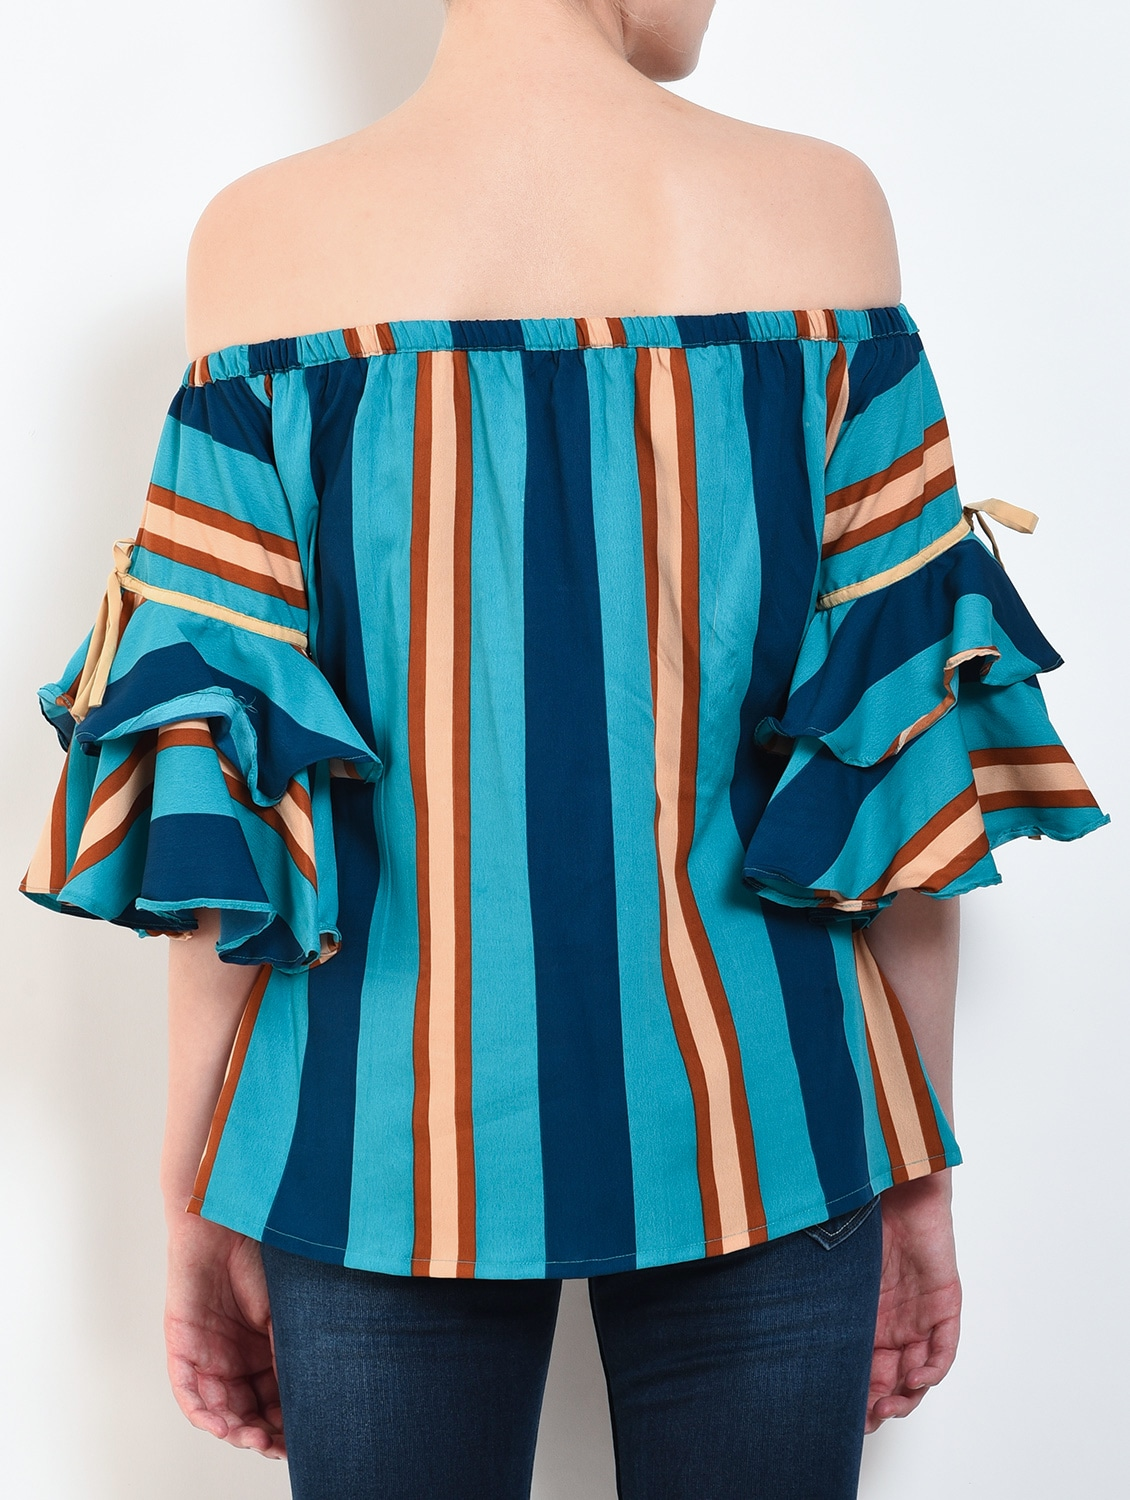 c087babdfdd4f Buy Tie Knot Sleeved Off Shoulder Striped Top by Kittu s - Online shopping  for Tops in India